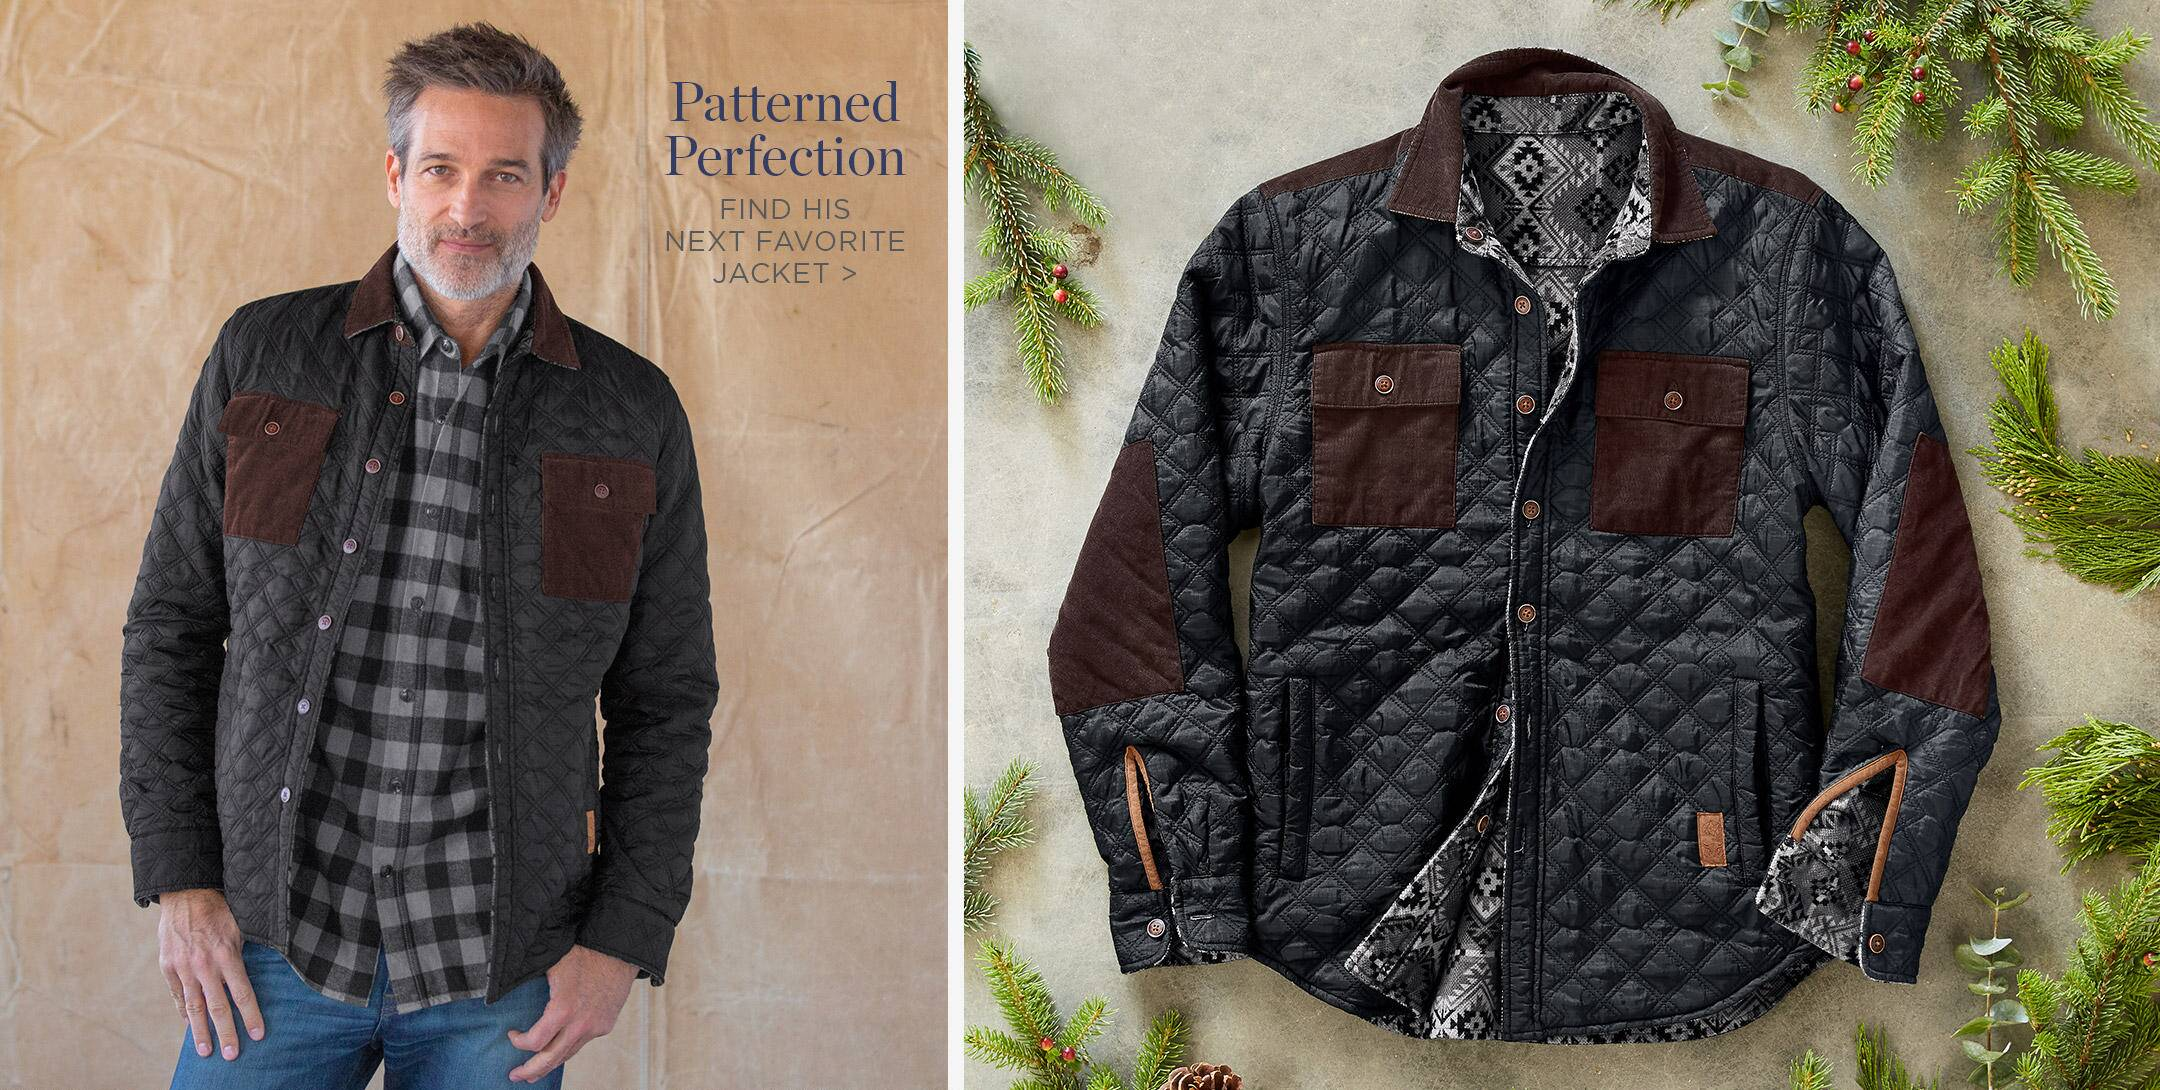 Shop Jackets for Him